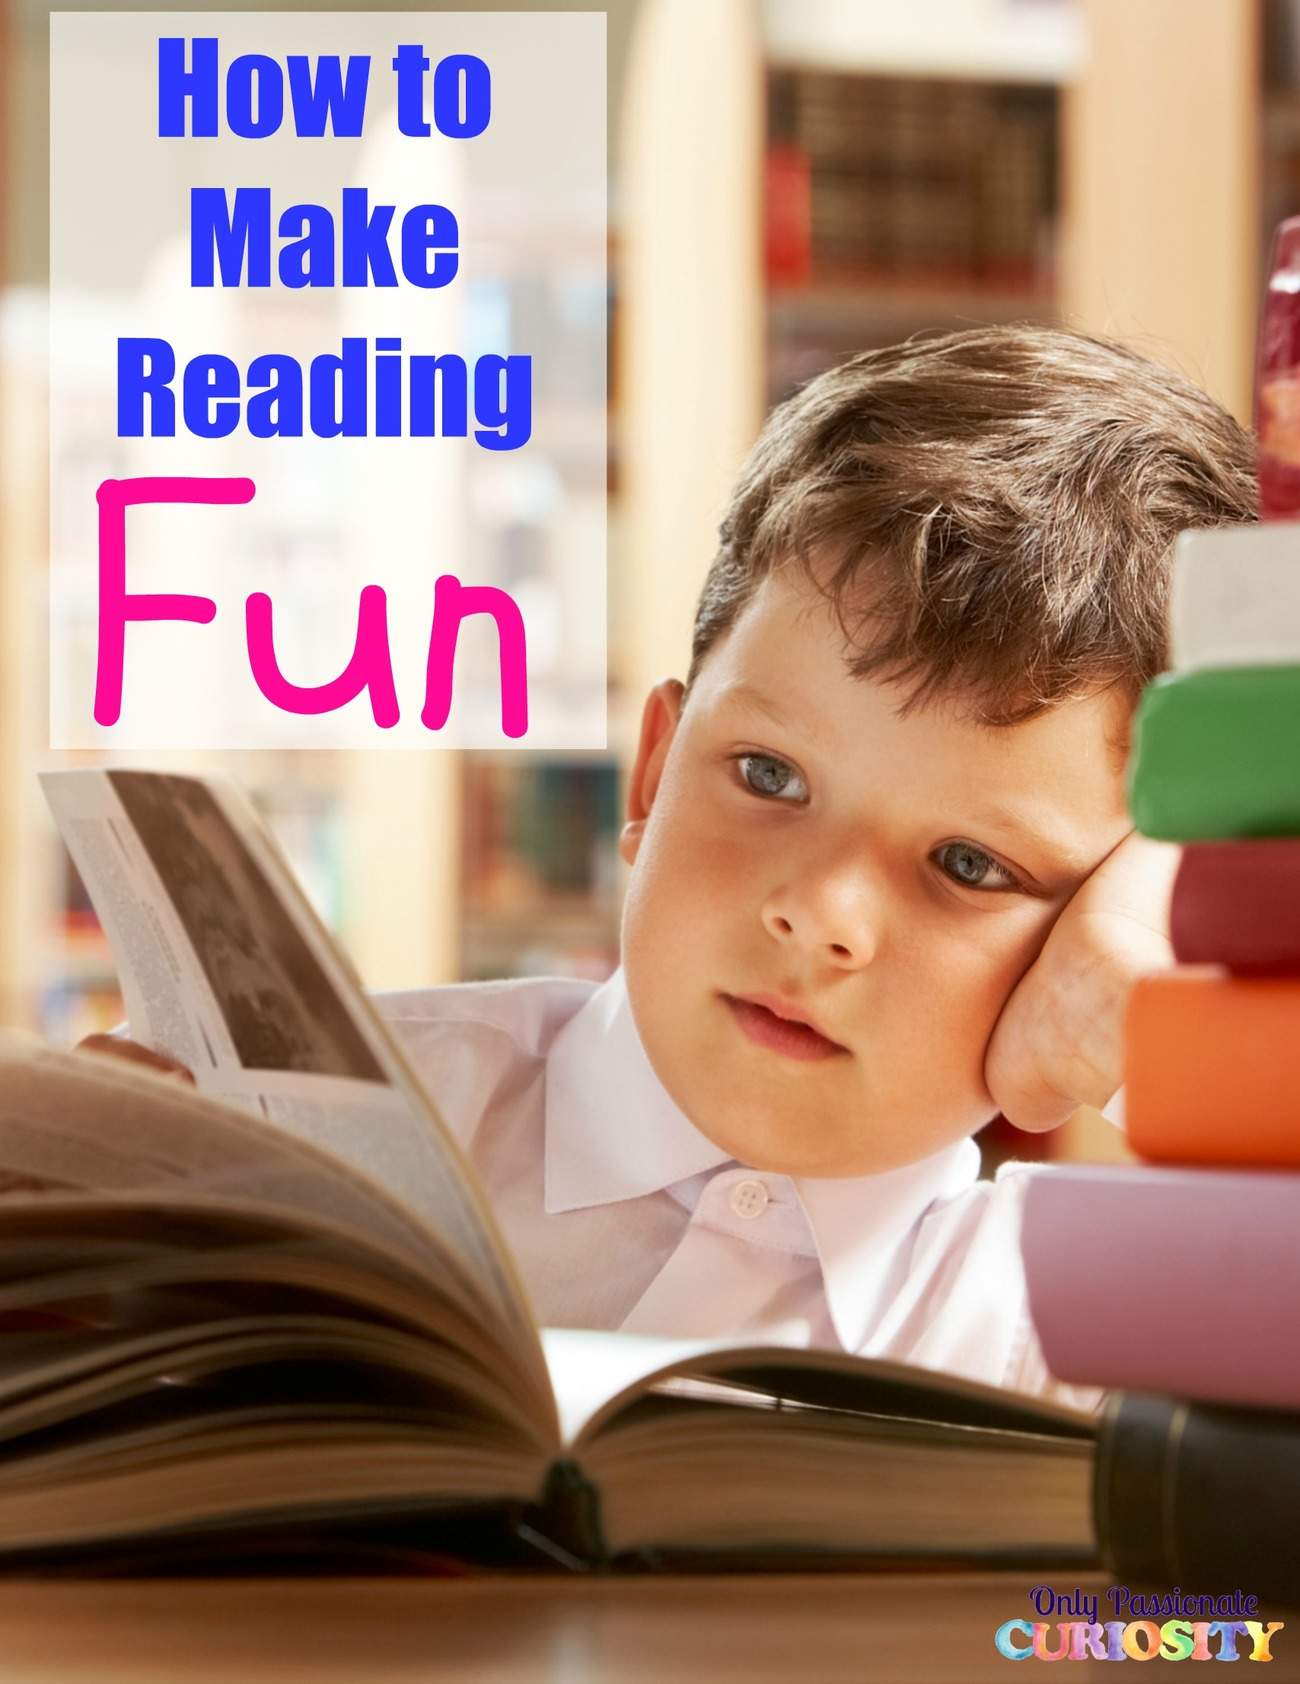 How to Make Reading Fun for Kids